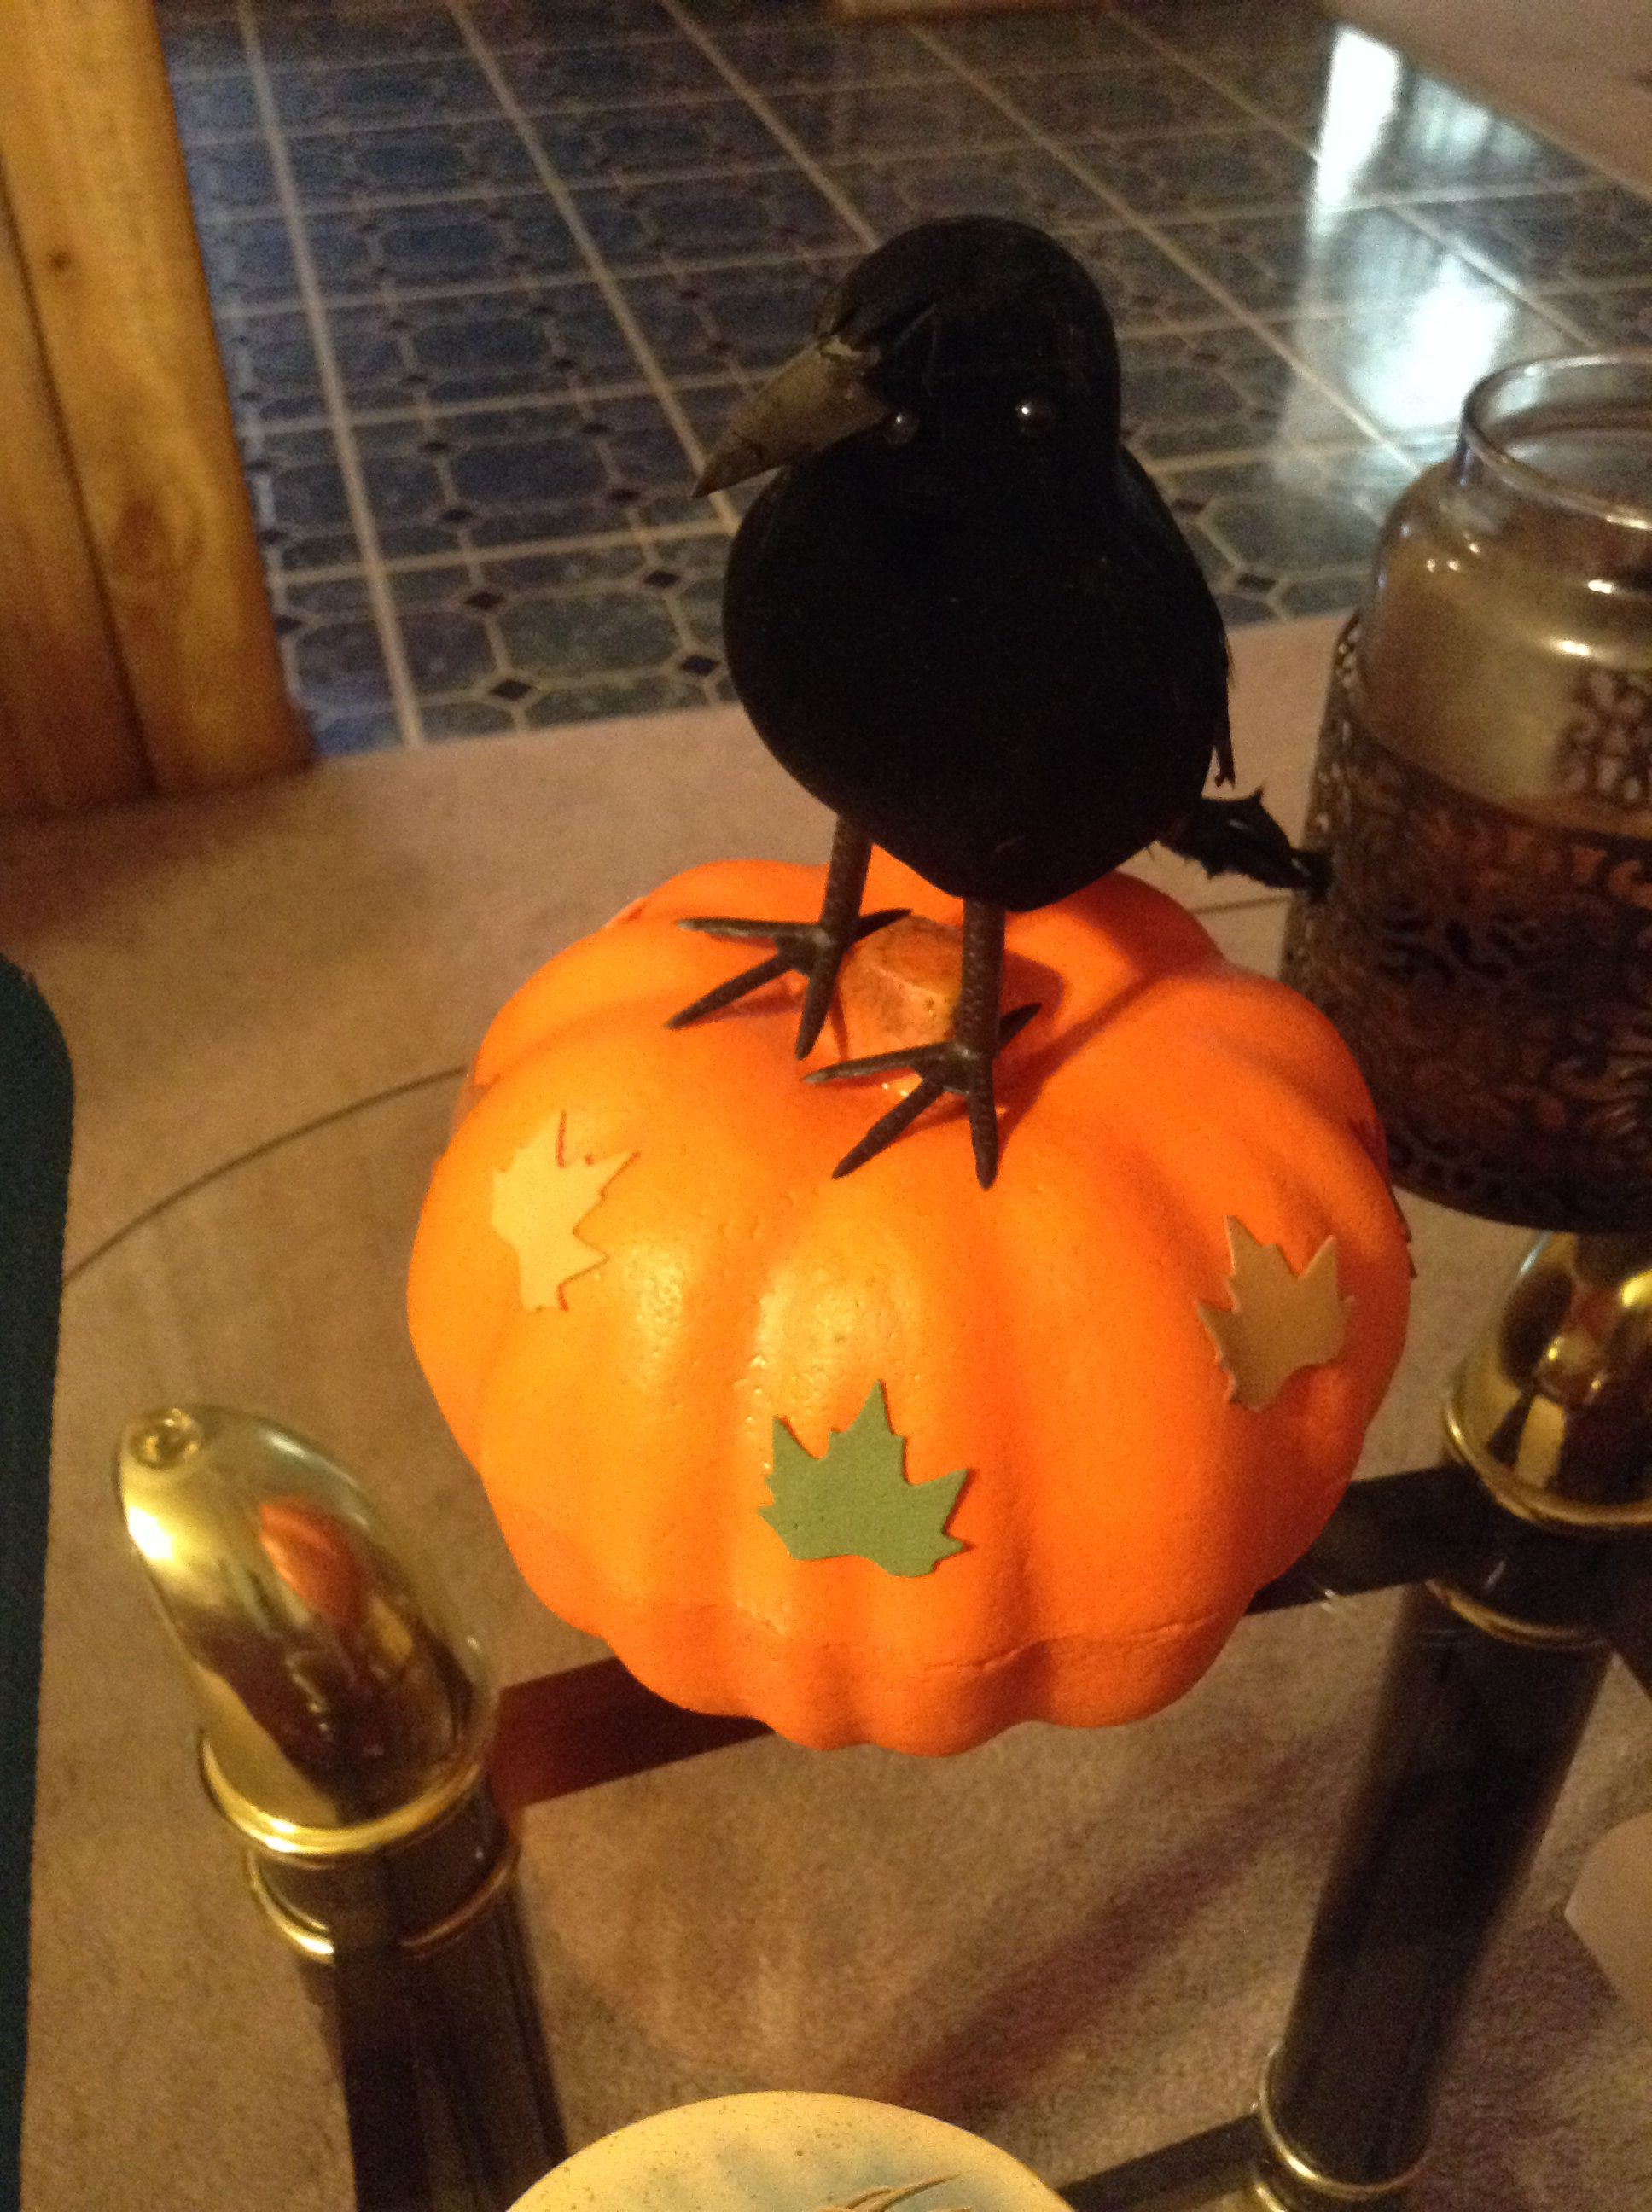 Buy a plastic pumpkin and then buy a black crow and then buy little plastic leaves with the sticky on the back. I just love this Halloween craft! So fun and creative for family time and really safe and easy for children!